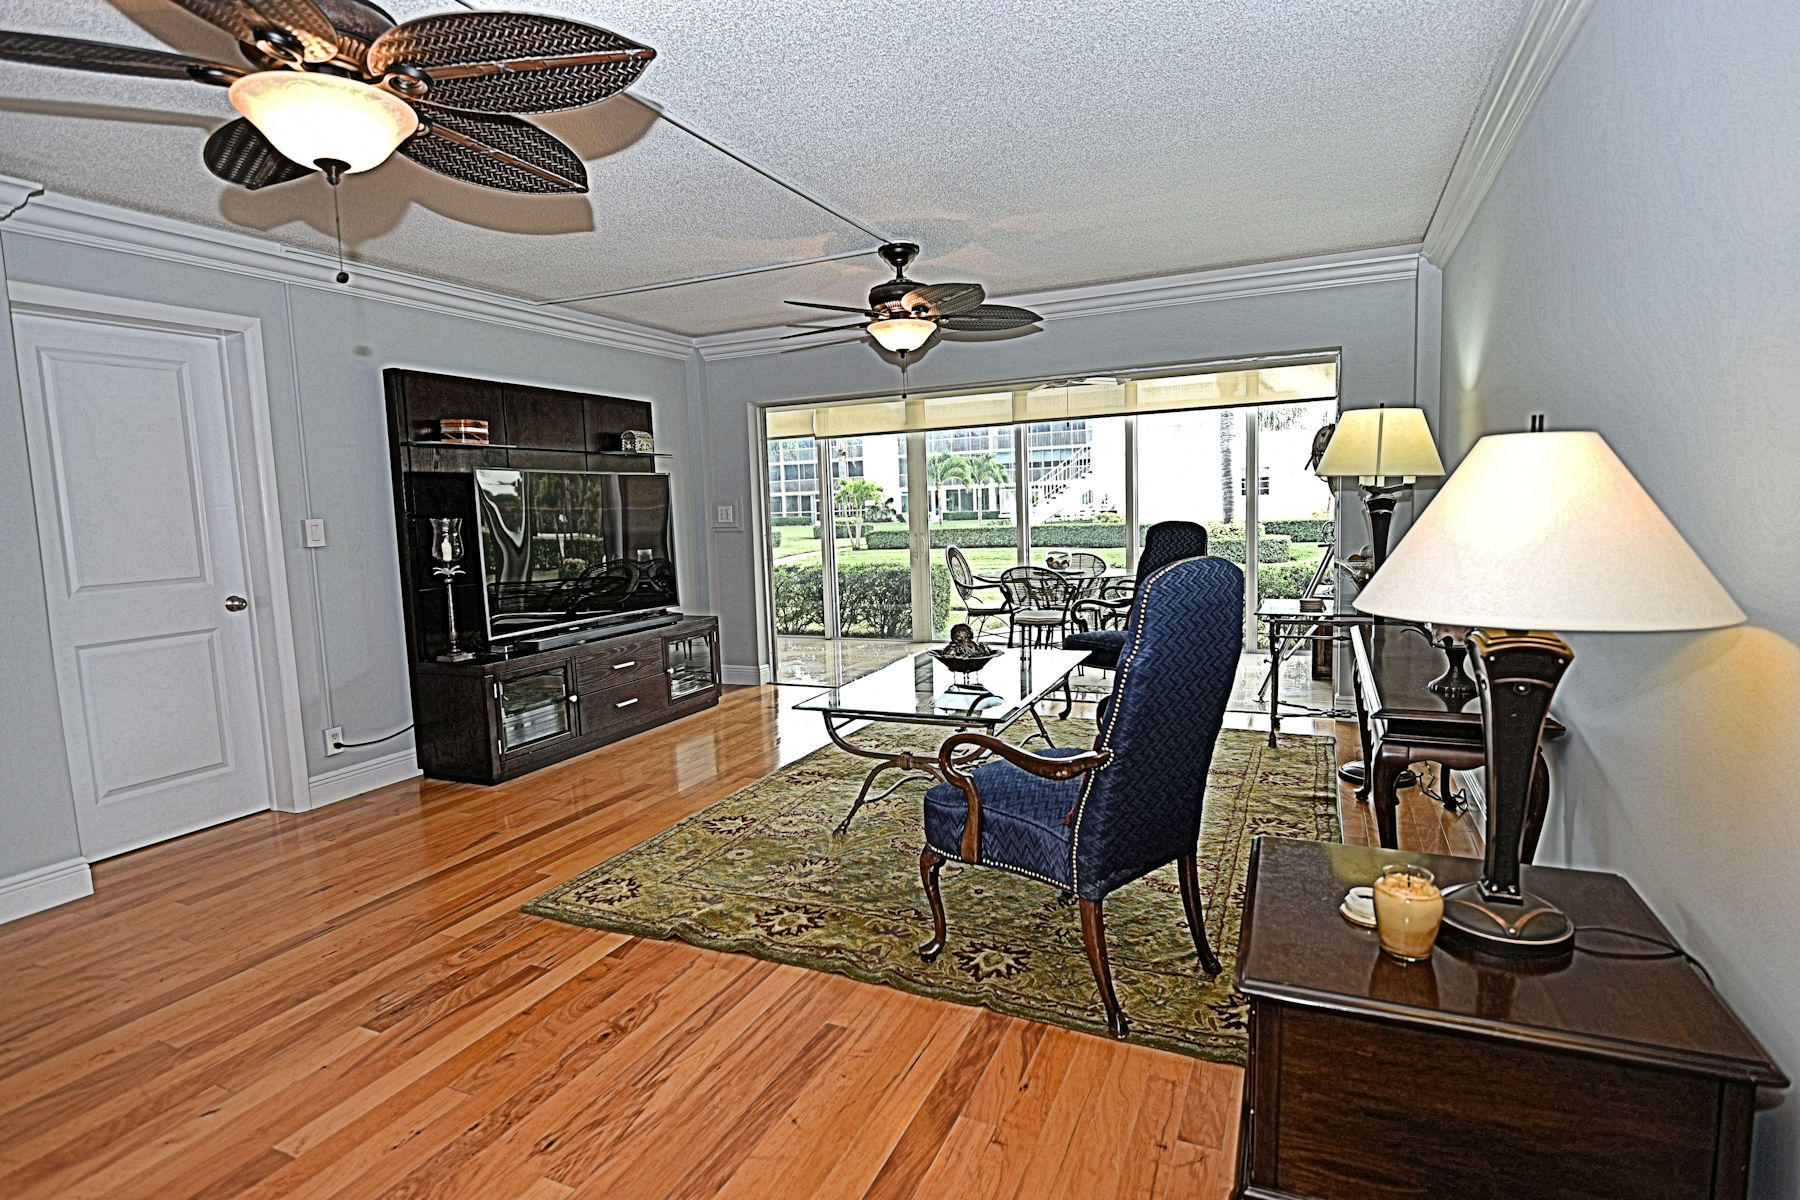 WATERWAY BEACH CONDOS HOMES FOR SALE